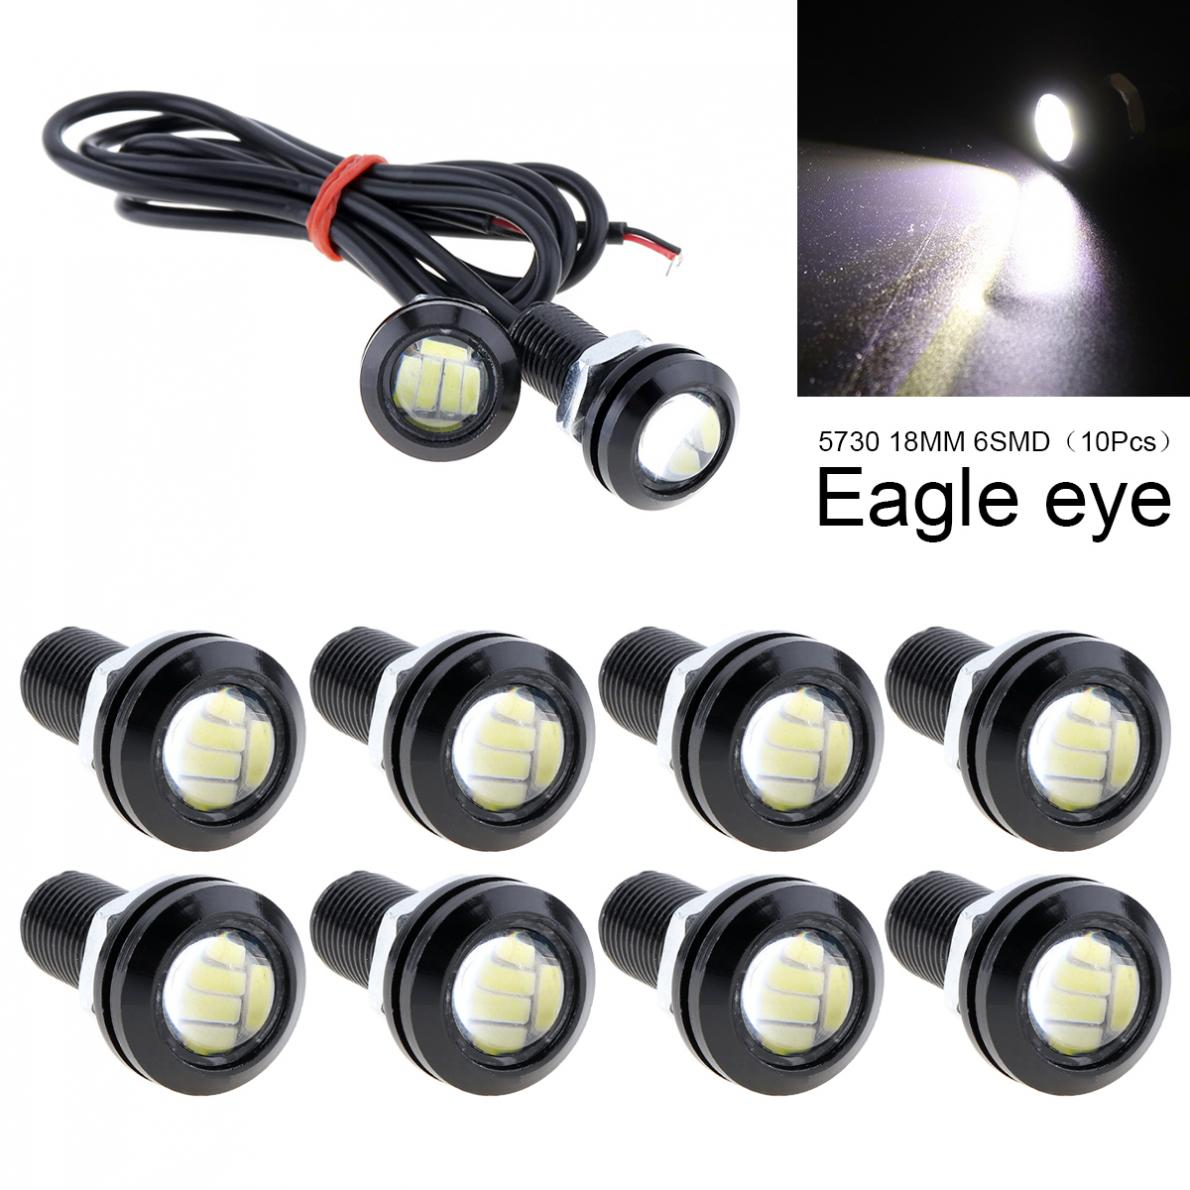 10pcs/lot 12V 18mm 4014 SMD LED Eagle Eye Light High Power Auto Fog DRL Bulb Corner Stop Tail Reverse Backup Parking Signal Lamp